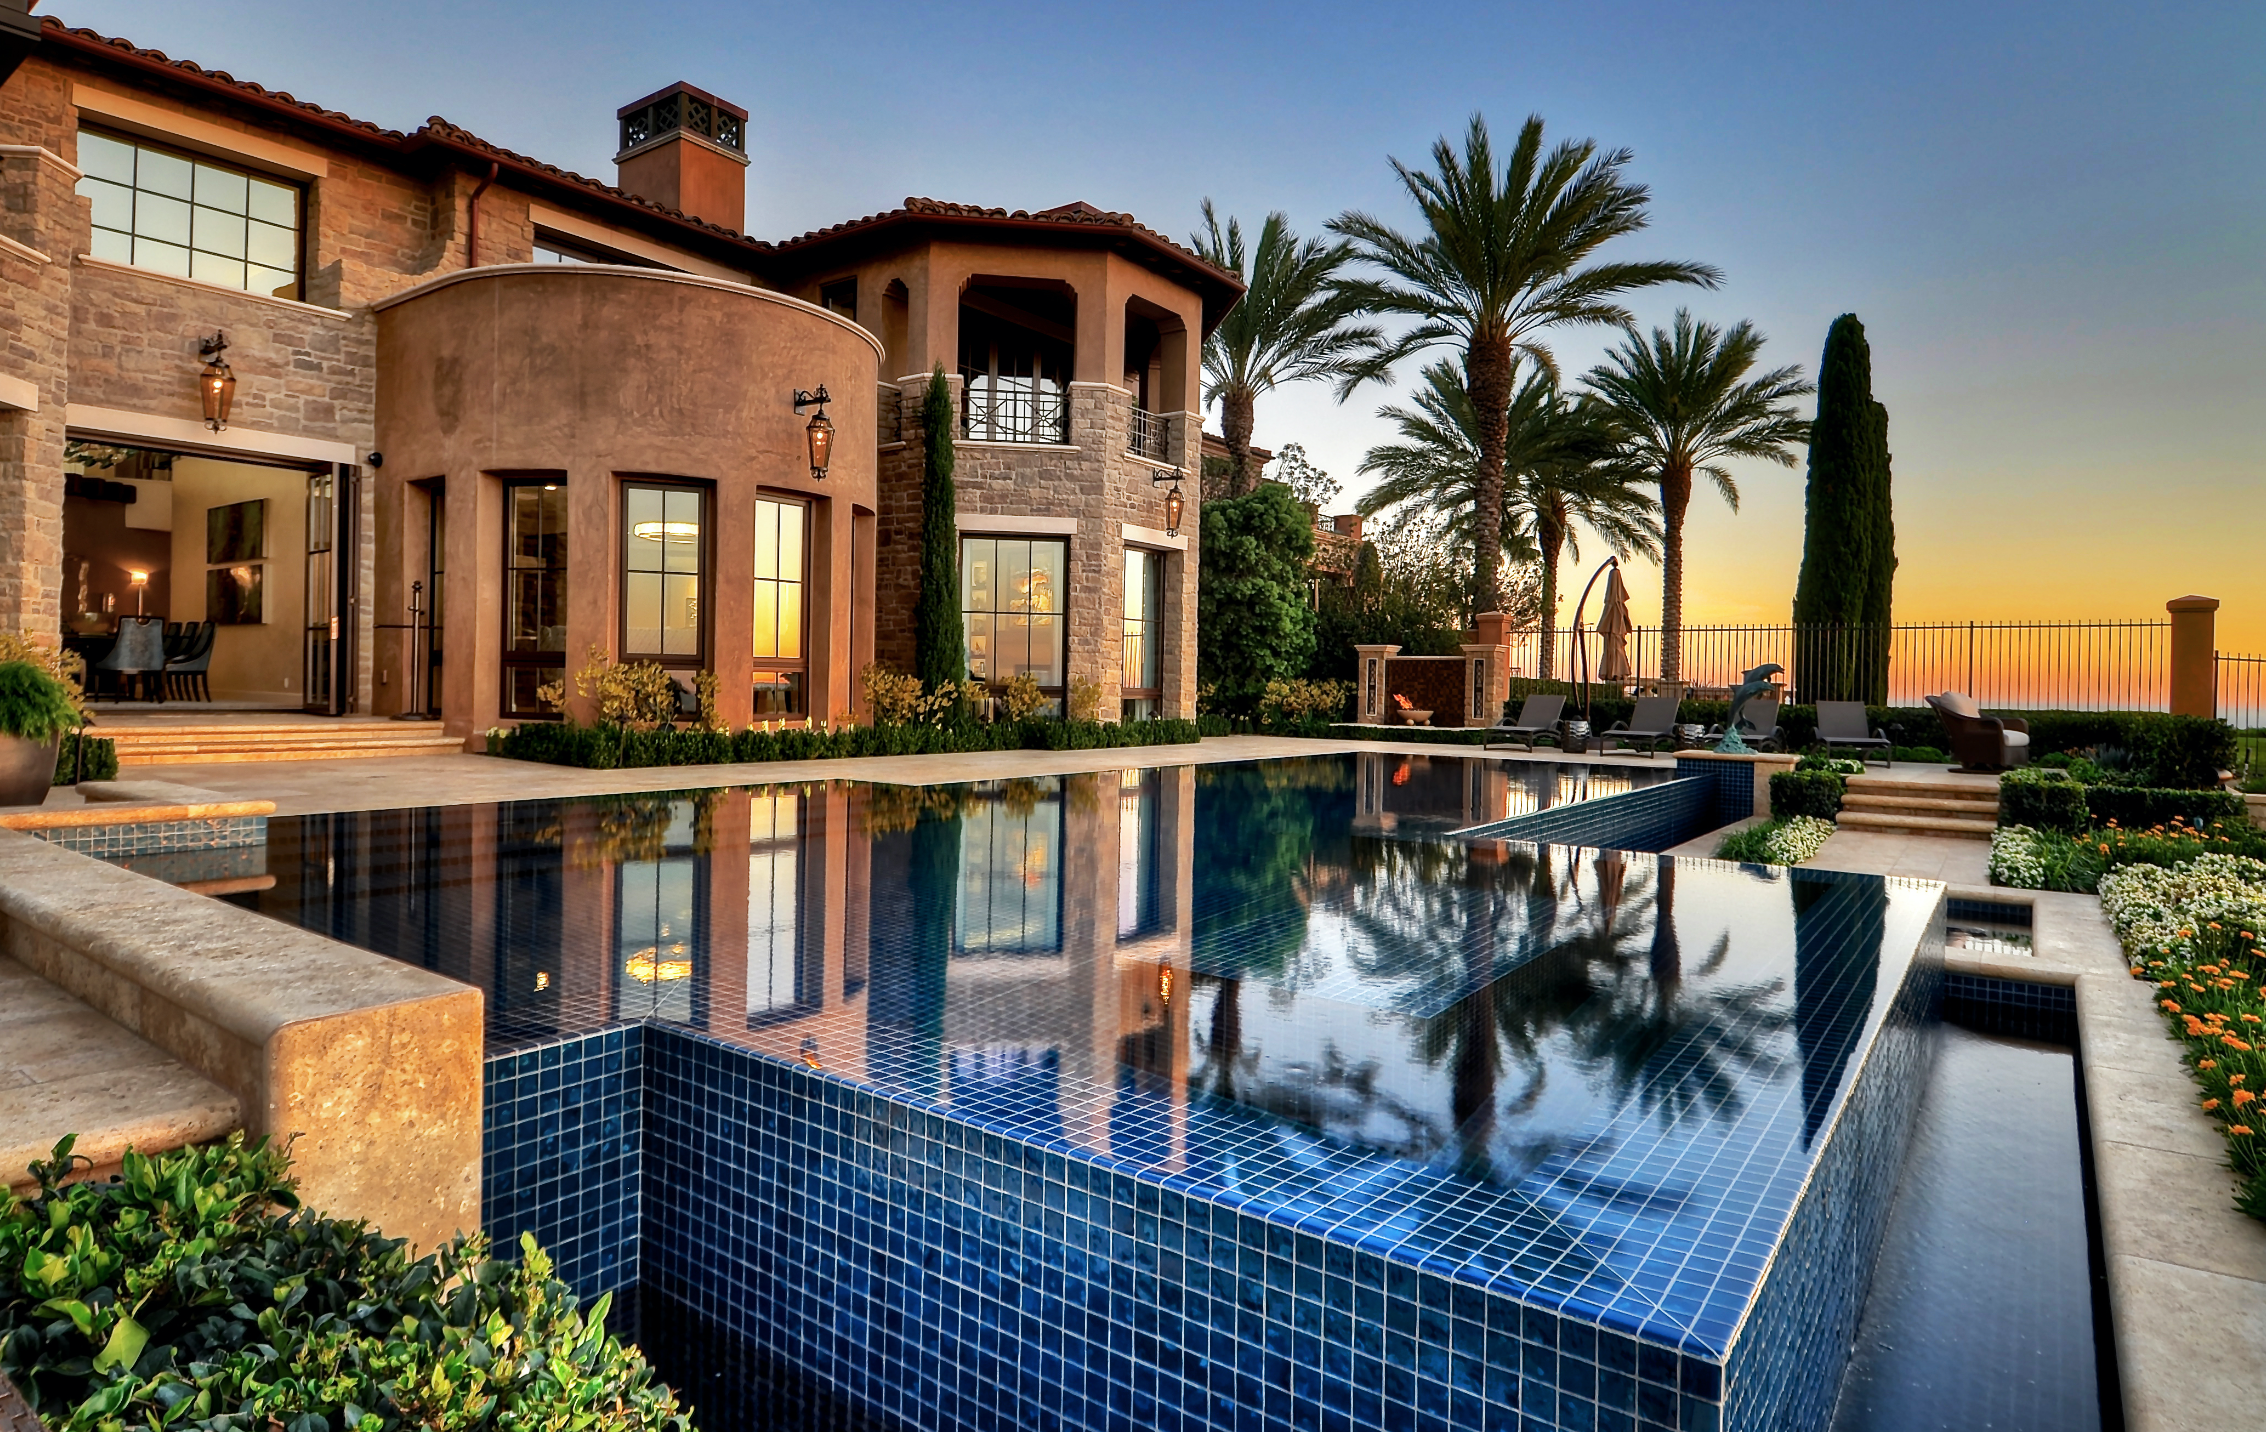 Landscape construction business in Newport Beach and San Clemente, CA